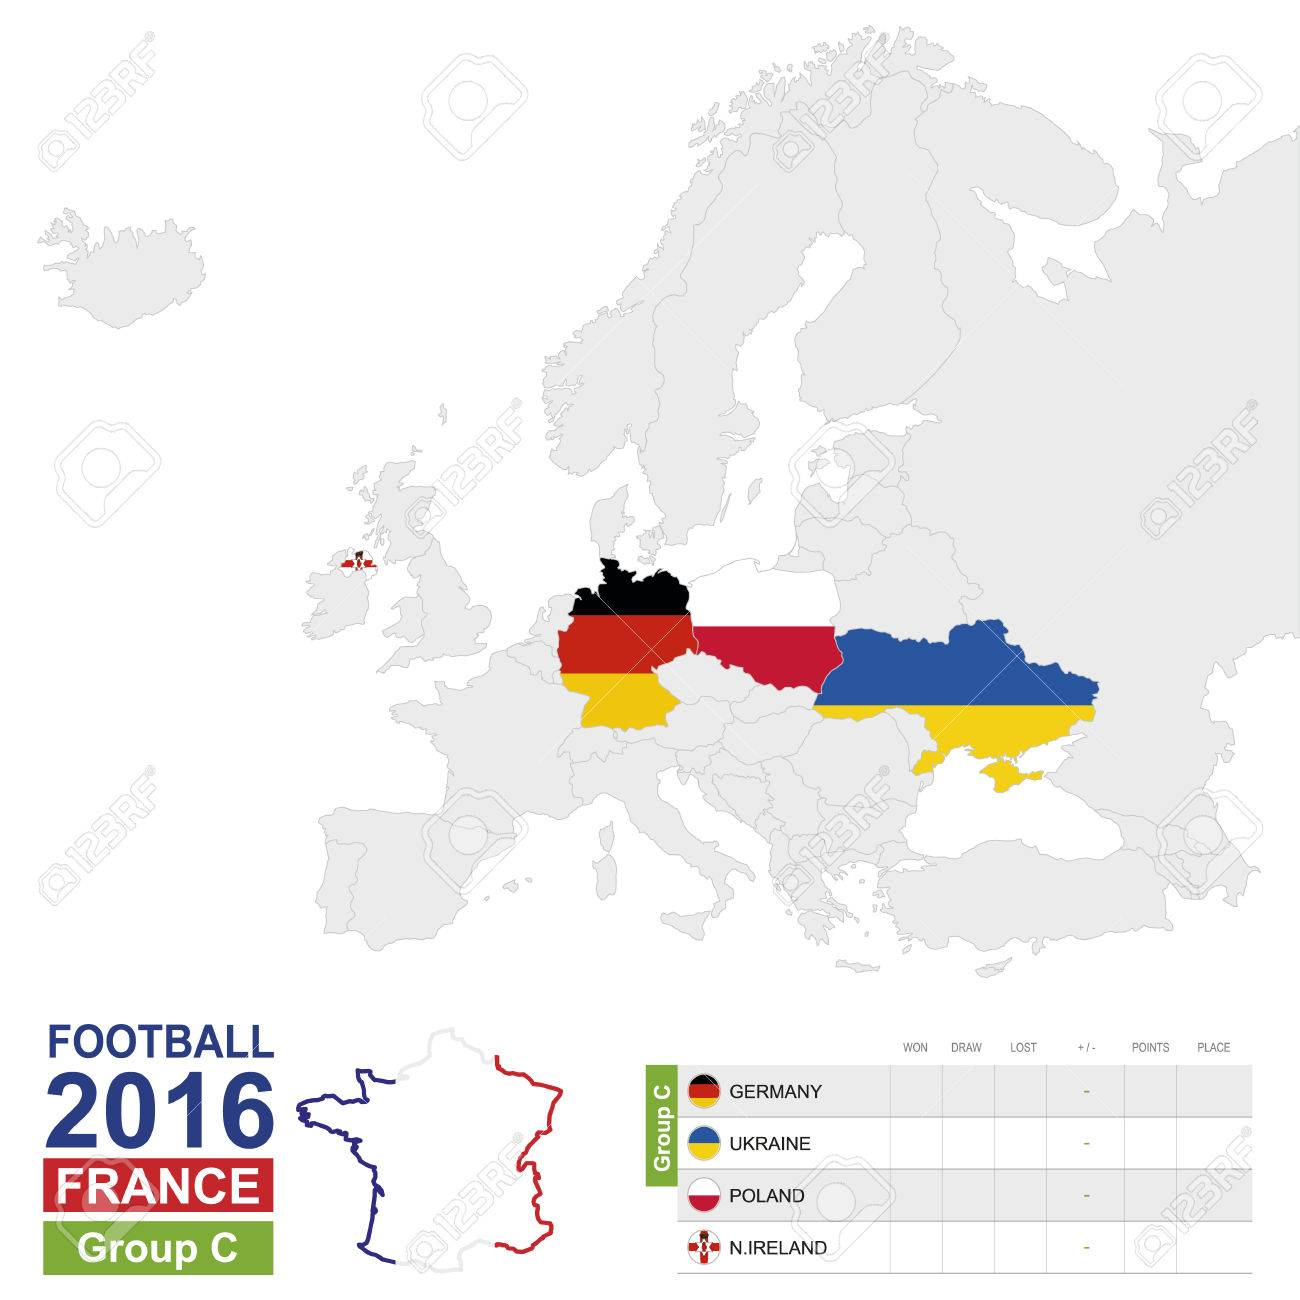 Football Group C Table Group C Highlighted On Europe Map - Germany map 2016